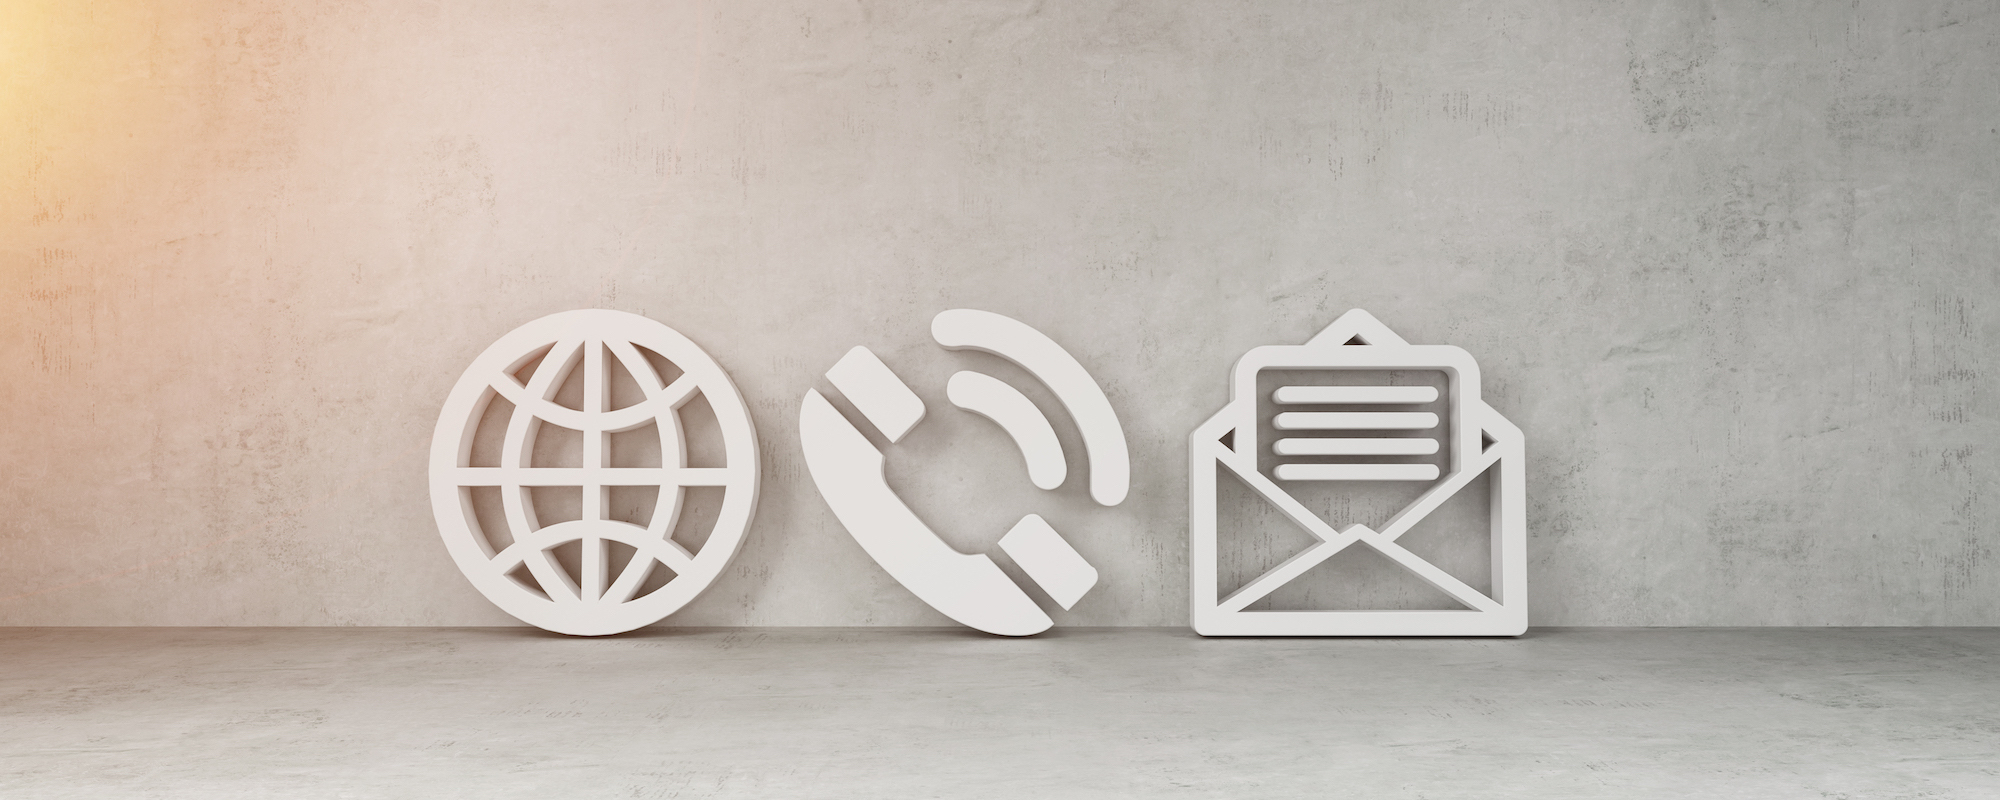 Big contact icons in bright concrete wall interior 3D rendering